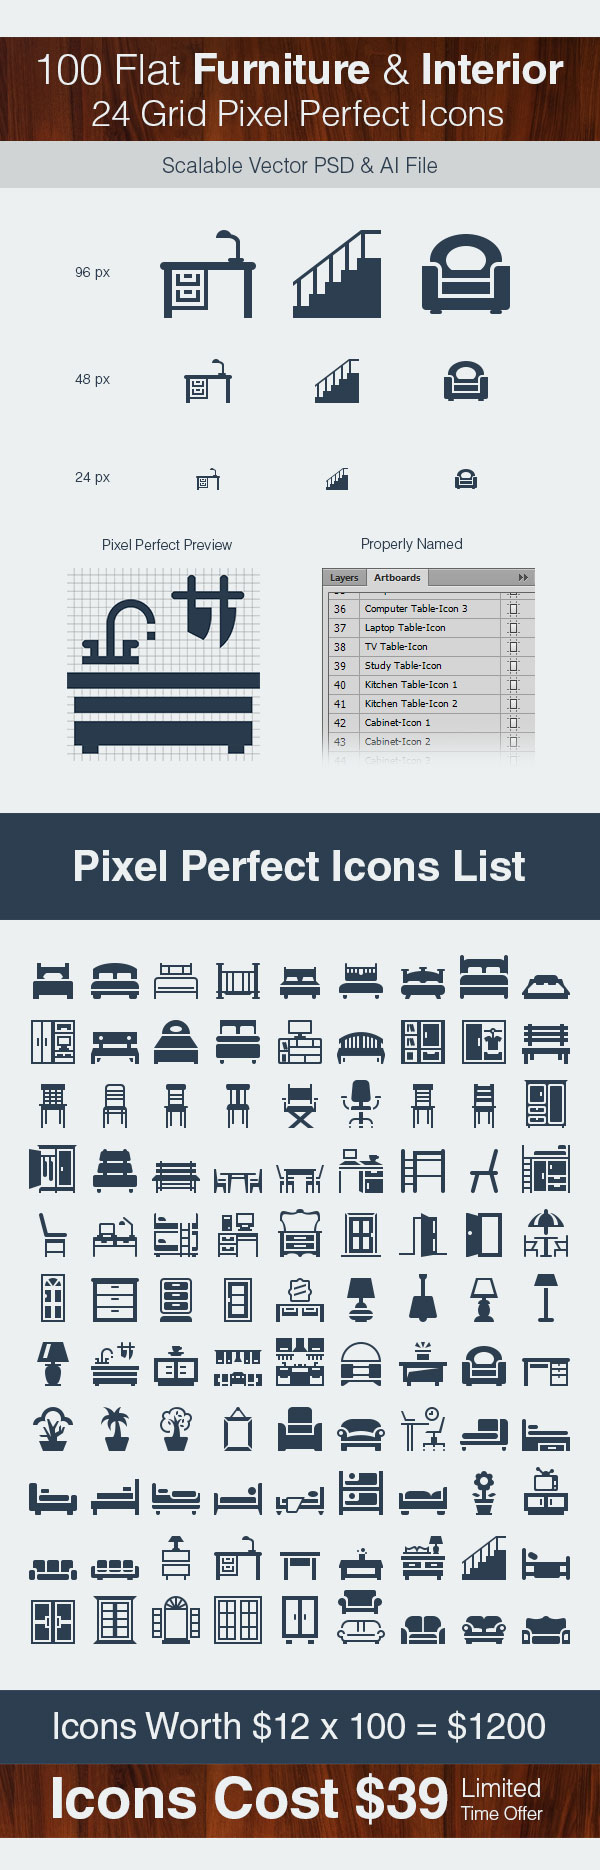 Flat-Furniture-&-Interior-Pixel-Perfect-Icons-Ai+PSD-4